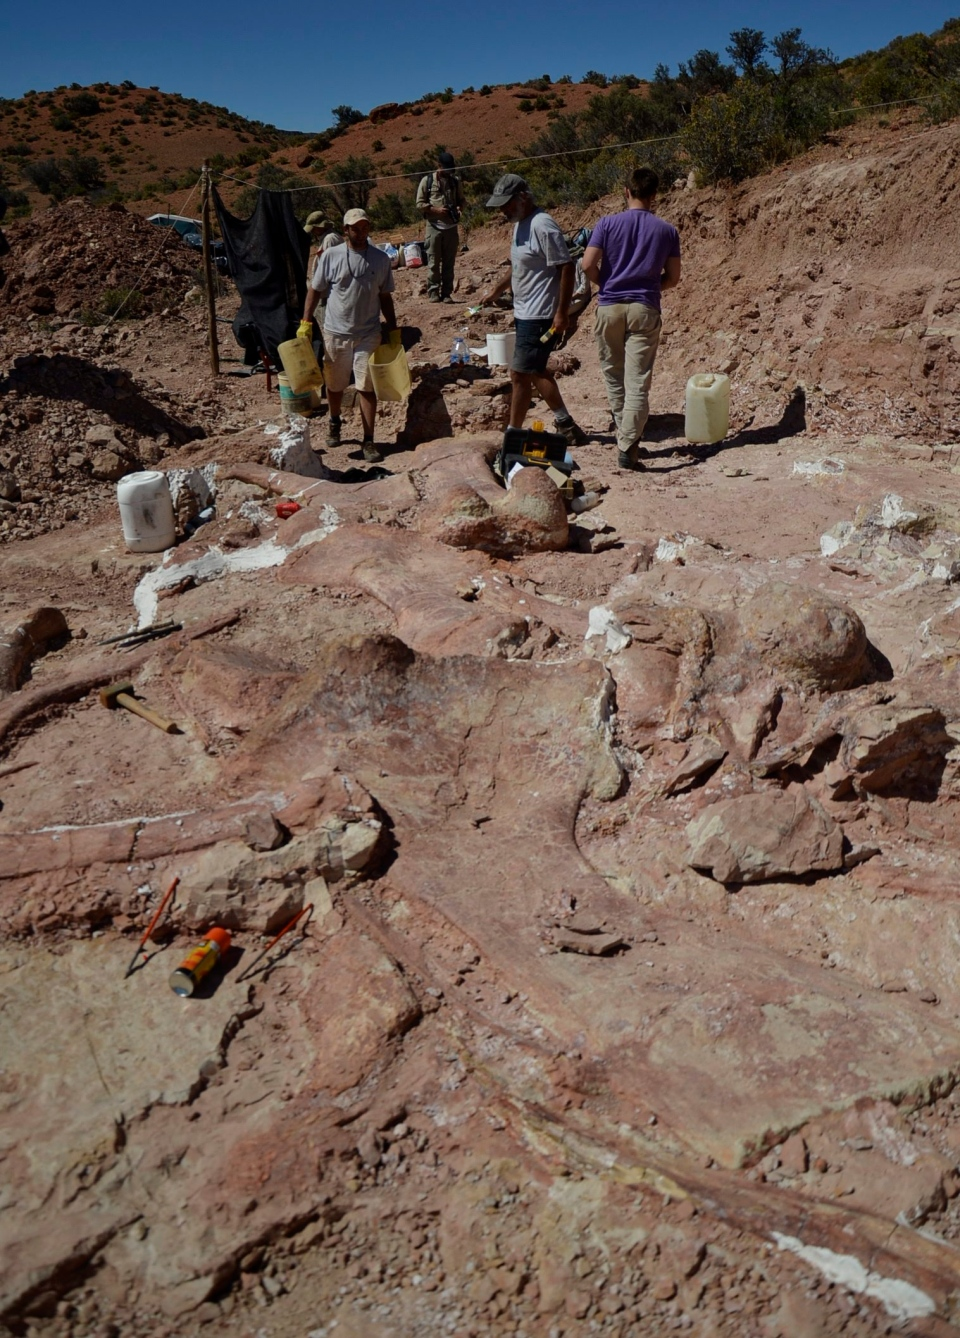 This photo released on Saturday, May 17, 2014 shows a team of paleontologists working at the site where the bones of a sauropod dinosaur were unearthed, near Trelew, Argentina.  (AP Photo/Museo Paletontológico Egidio Feruglio)